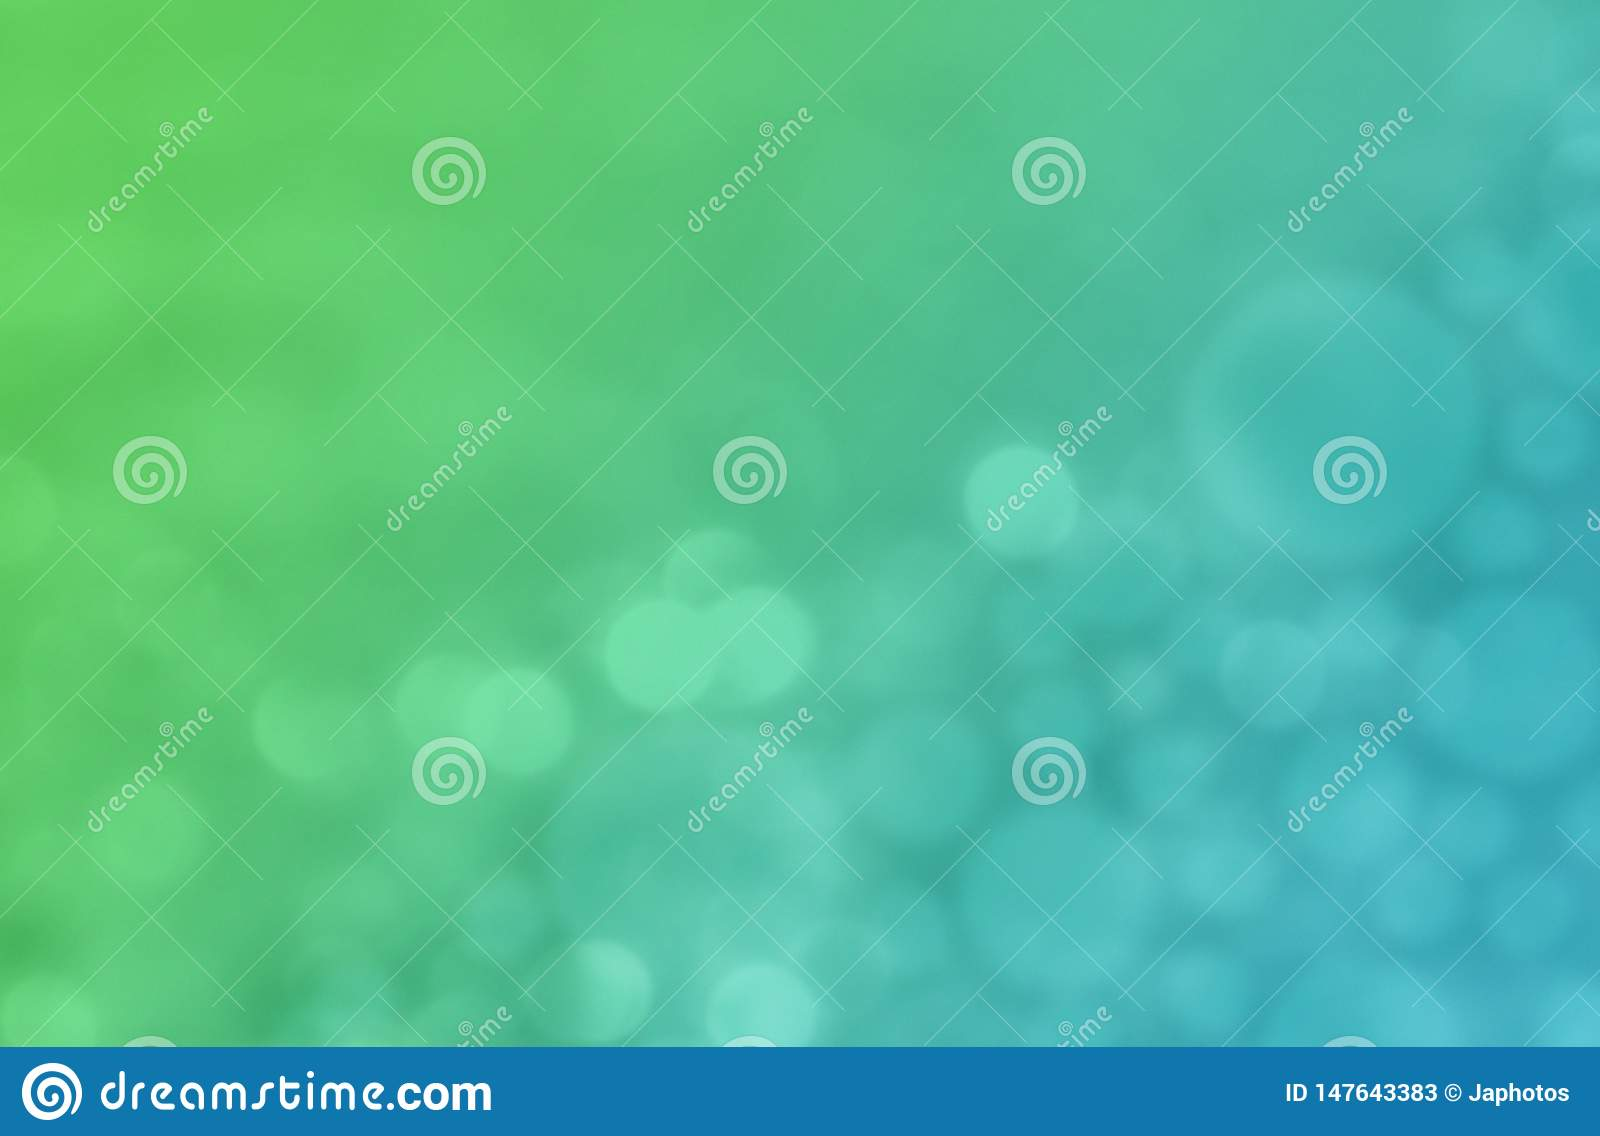 Modern Green And Blue Colorful Bokeh Abstract Wallpaper Background